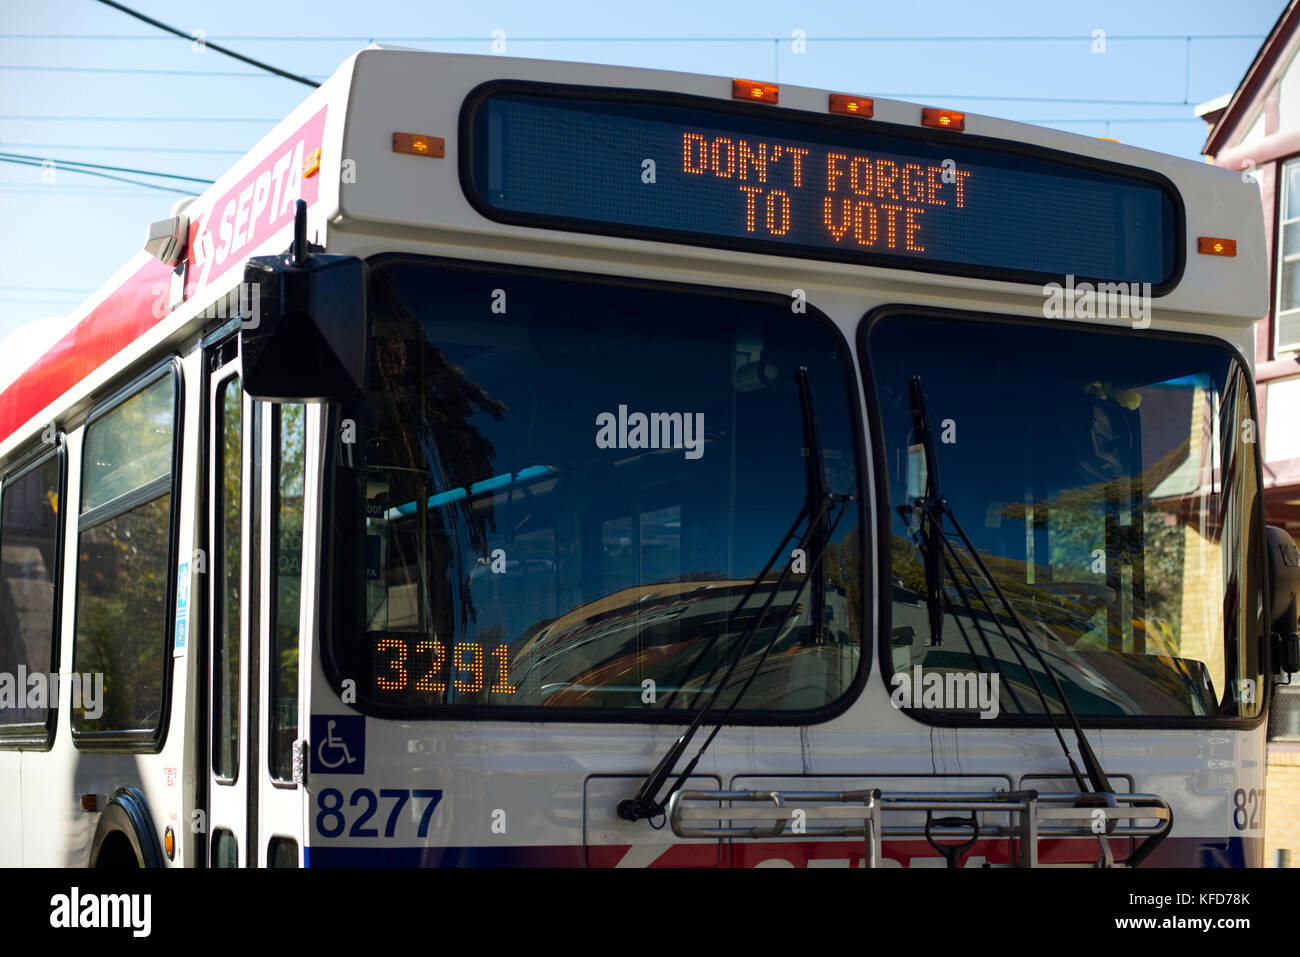 The led display on a SEPTA bus reminds citizens to vote in the 2016 General Elections, in Philadelphia, PA. - Stock Image